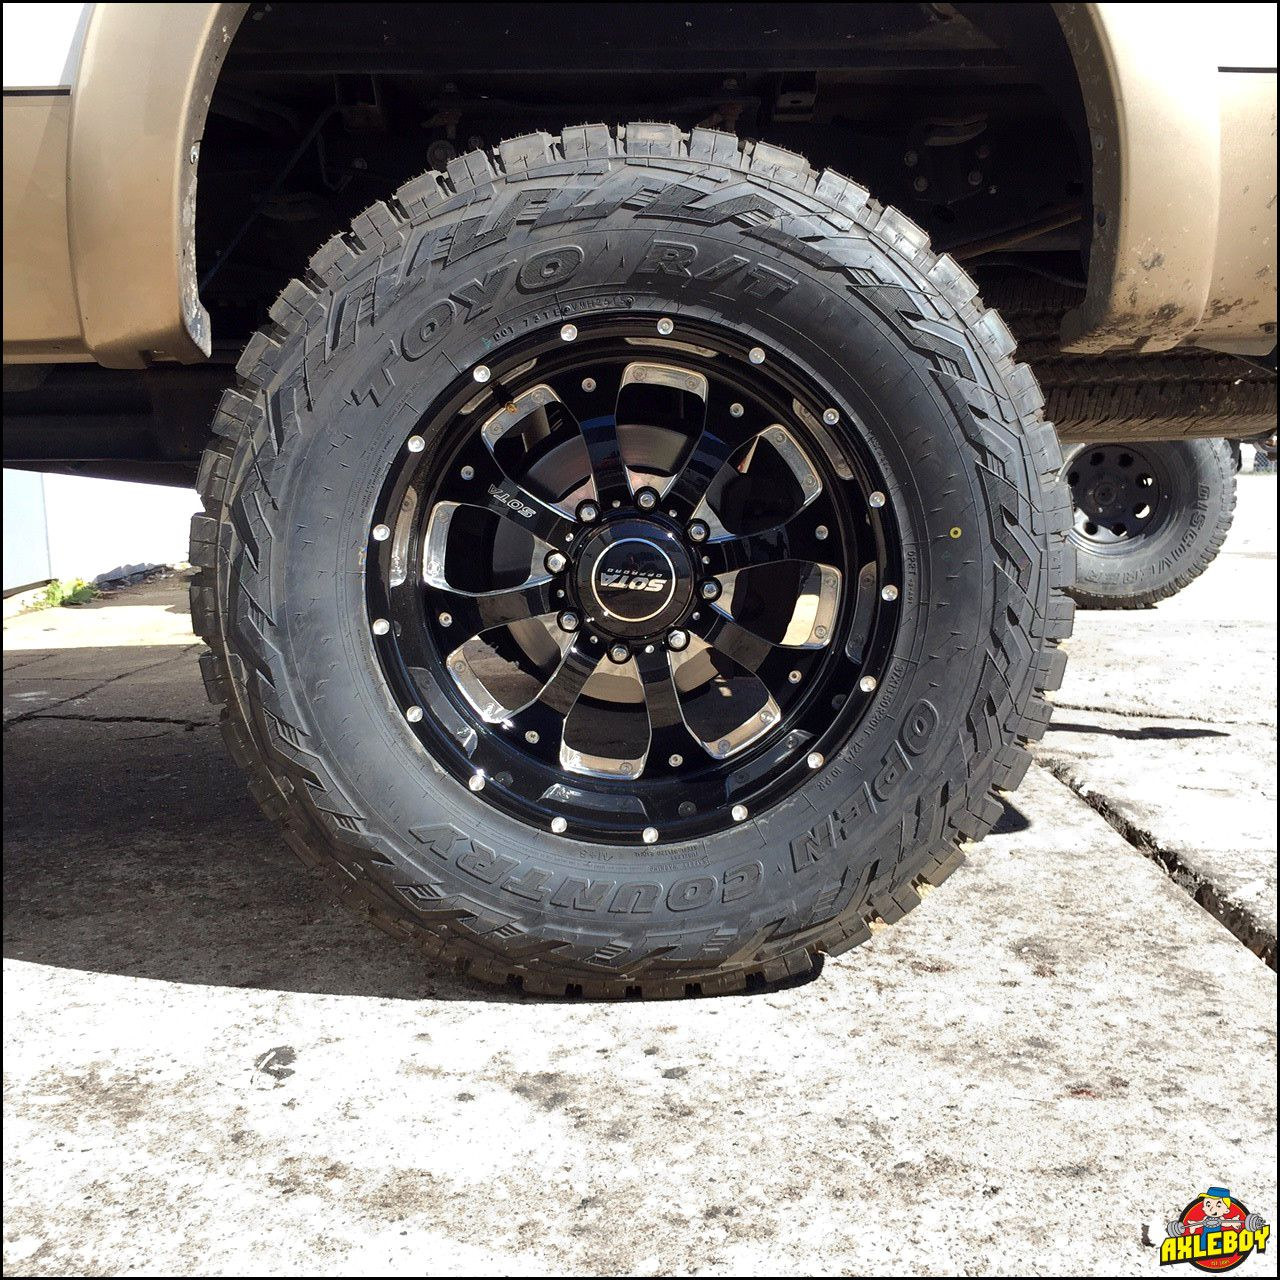 37 Toyo Open Country Tire And 20 Sota Offroad Wheel Under A Truck Axleboy Offroad Jeep Shop Wheel Truck Accessories